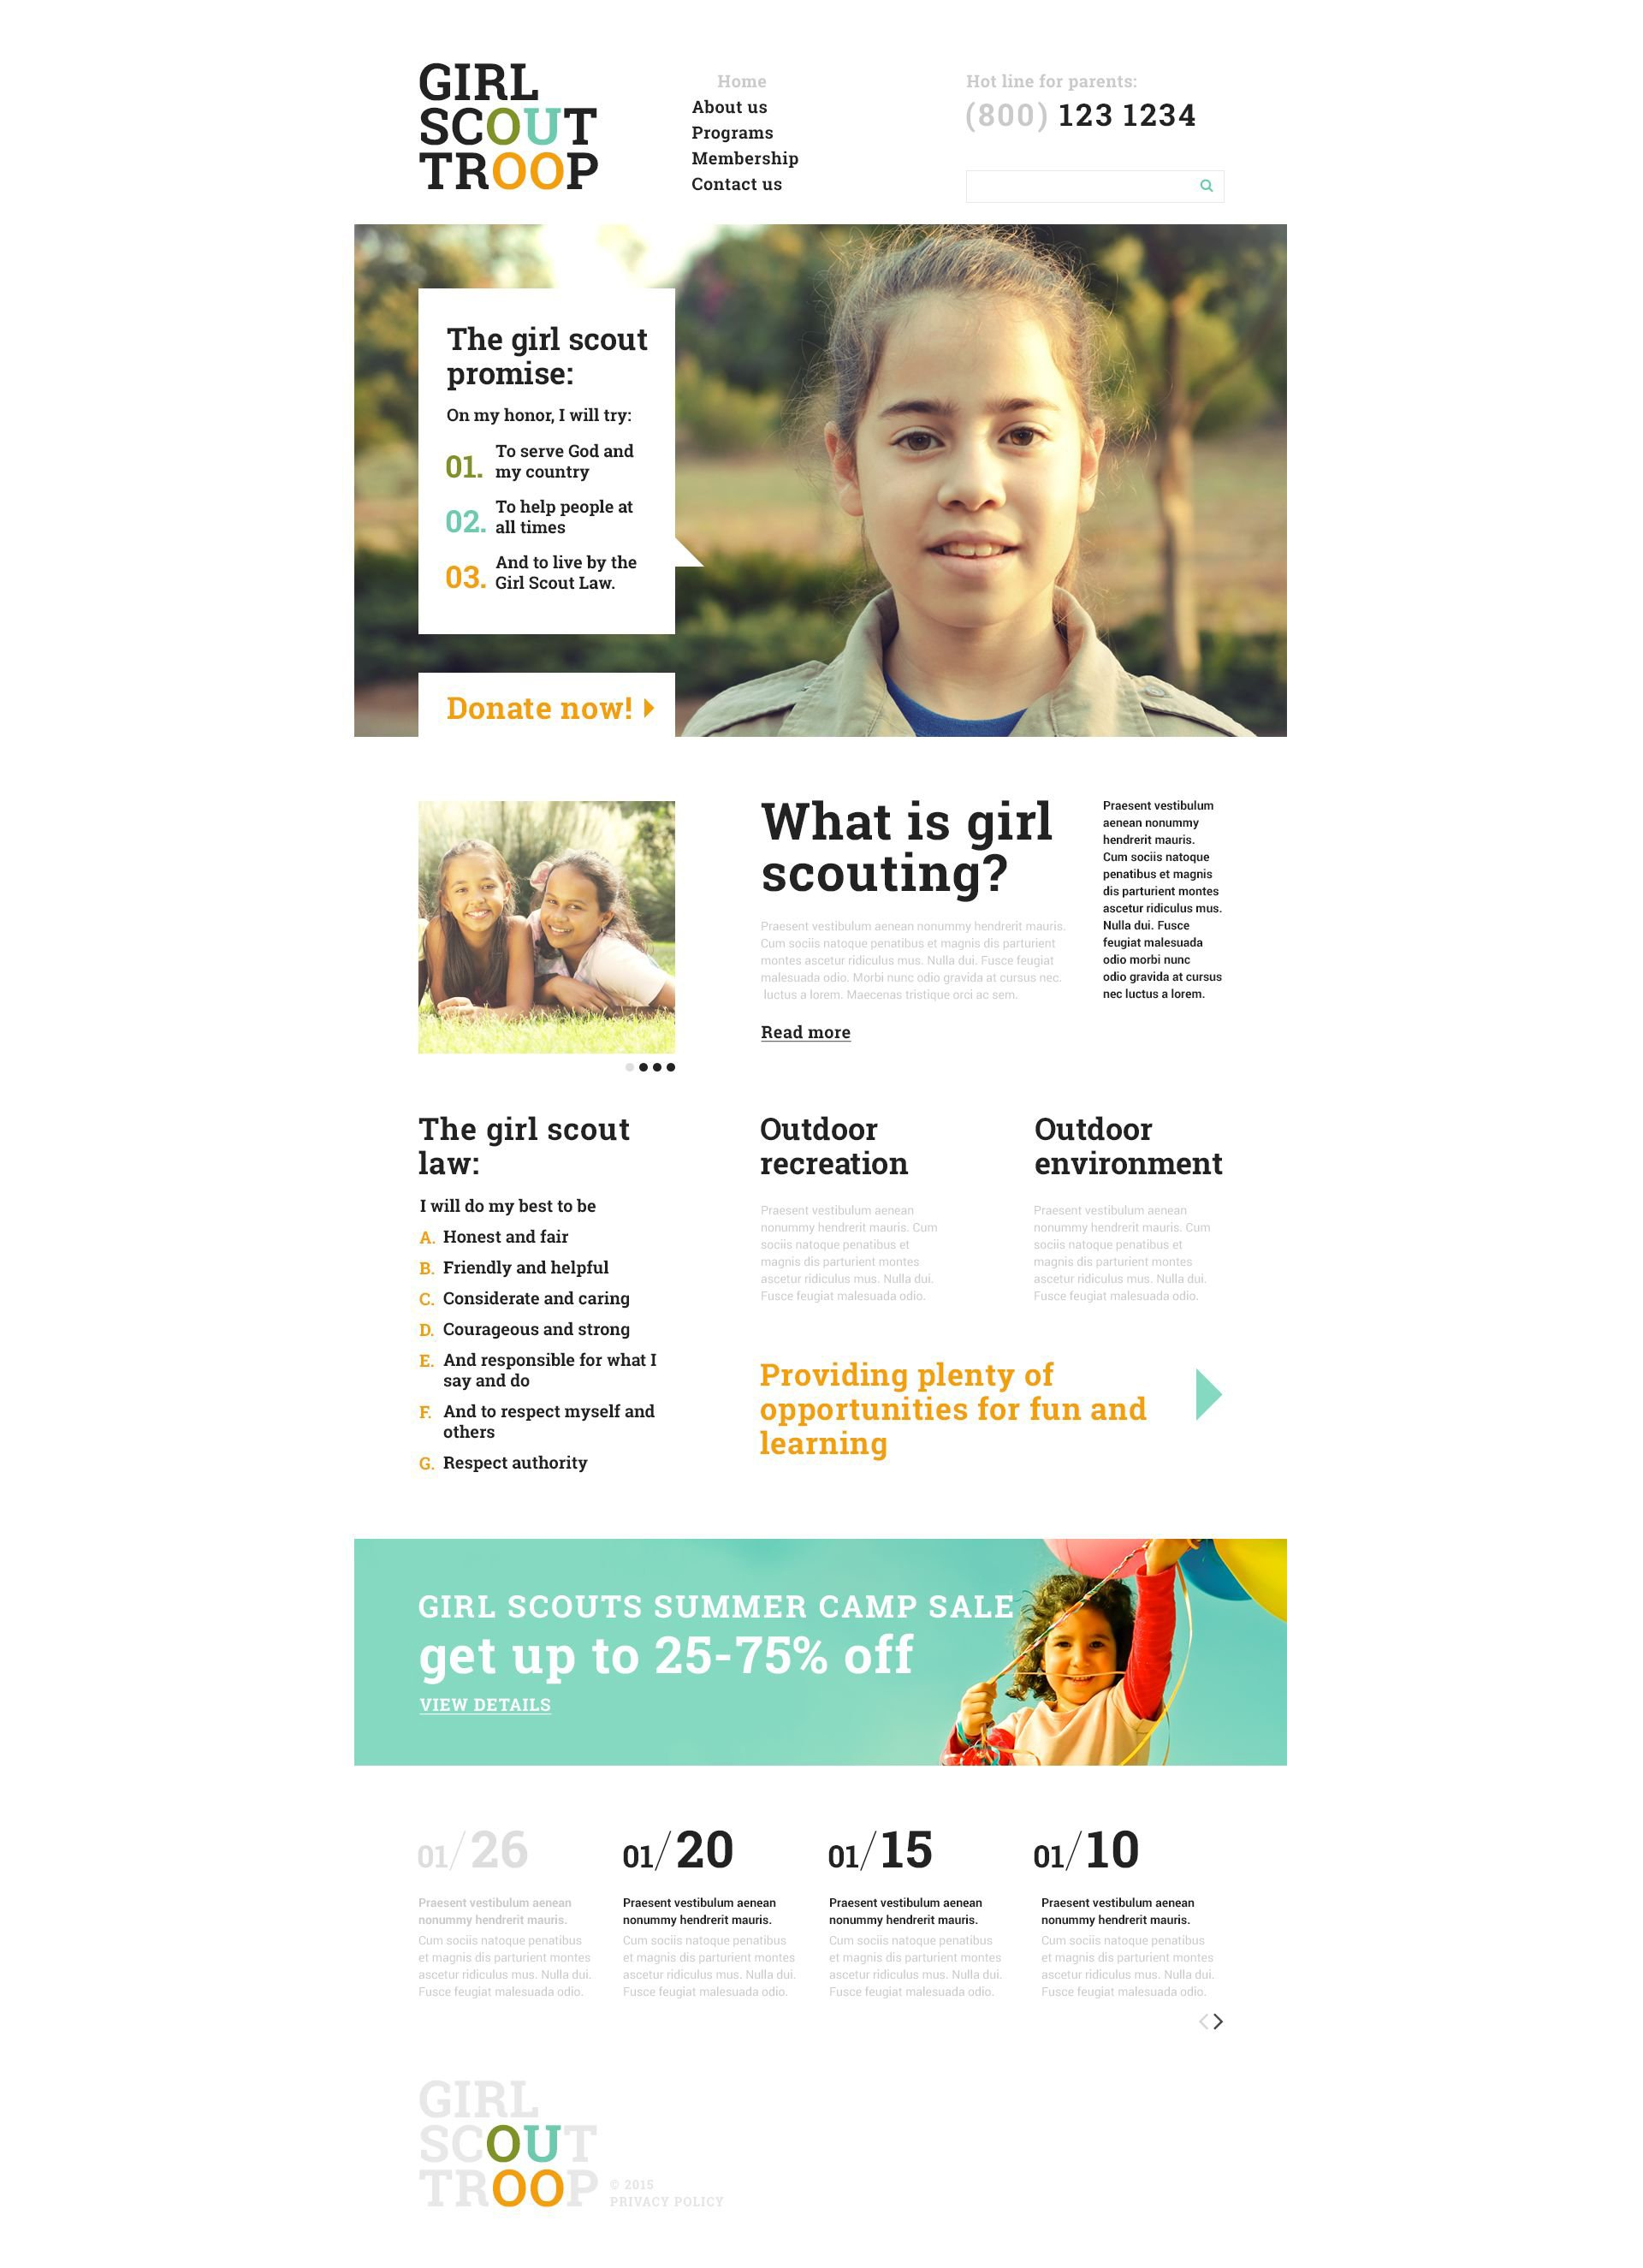 The Girl Scout Responsive Javascript Animated Design 53706, one of the best website templates of its kind (society & culture, most popular), also known as girl scout website template, troop website template, camping website template, tourism website template, equipment website template, tents website template, campers website template, motorhome website template, hire website template, western website template, lakes website template, mountains website template, mid website template, coast website template, down website template, east website template, sunrise website template, country website template, tourists website template, guide website template, tips website template, regions website template, destination website template, map website template, compass website template, info website template, statewide website template, activity website template, gallery website template, location website template, relaxation website template, recreation website template, impression website template, vacatio and related with girl scout, troop, camping, tourism, equipment, tents, campers, motorhome, hire, western, lakes, mountains, mid, coast, down, east, sunrise, country, tourists, guide, tips, regions, destination, map, compass, info, statewide, activity, gallery, location, relaxation, recreation, impression, vacatio, etc.